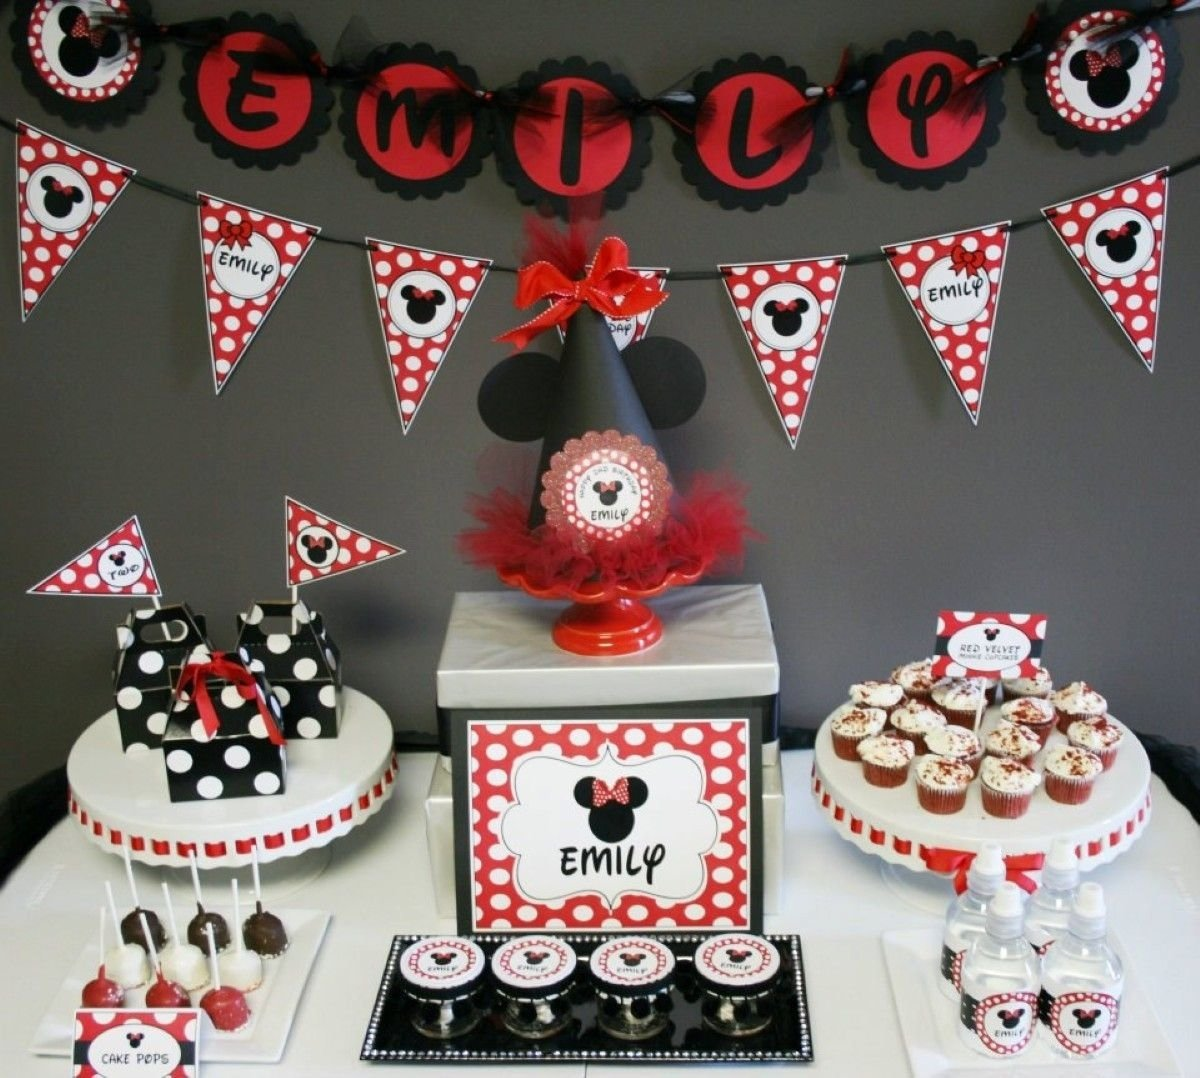 10 Pretty Minnie And Mickey Mouse Party Ideas mickey mouse birthday party ideas mouse mickey cars vmj 12000 en 1 2021